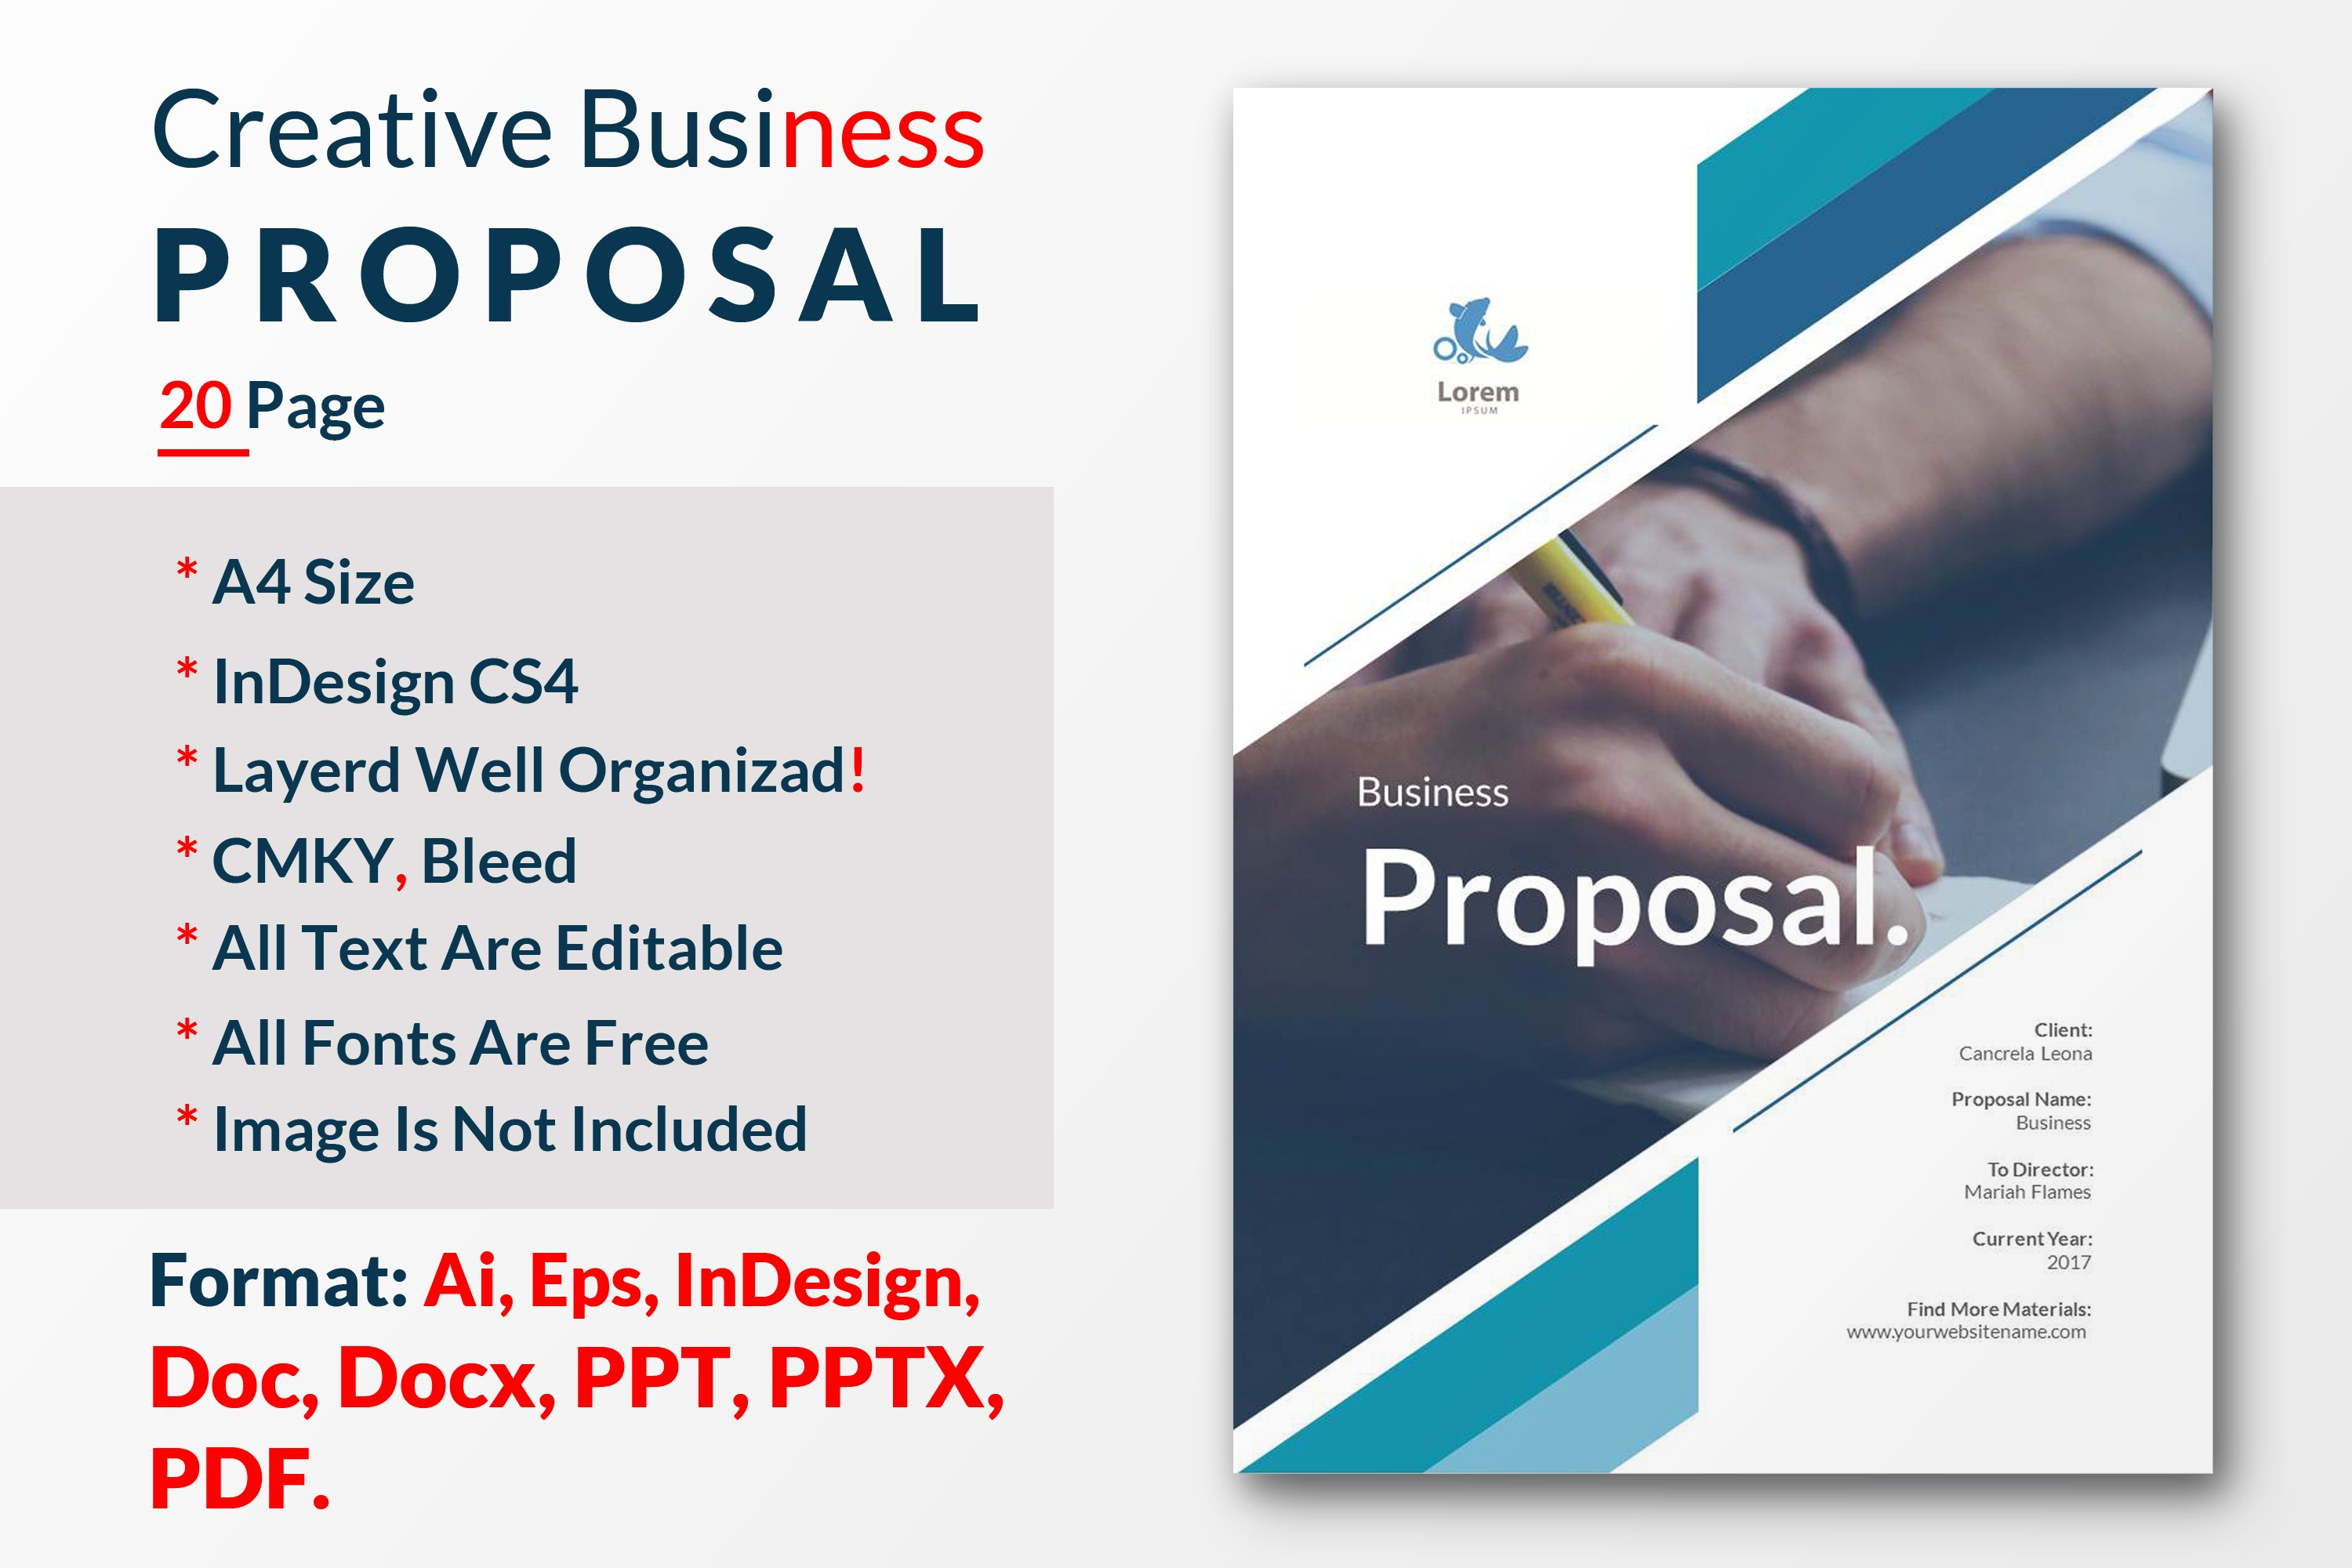 Creative Business Proposal Template ~ Brochure Templates ~ Creative ...